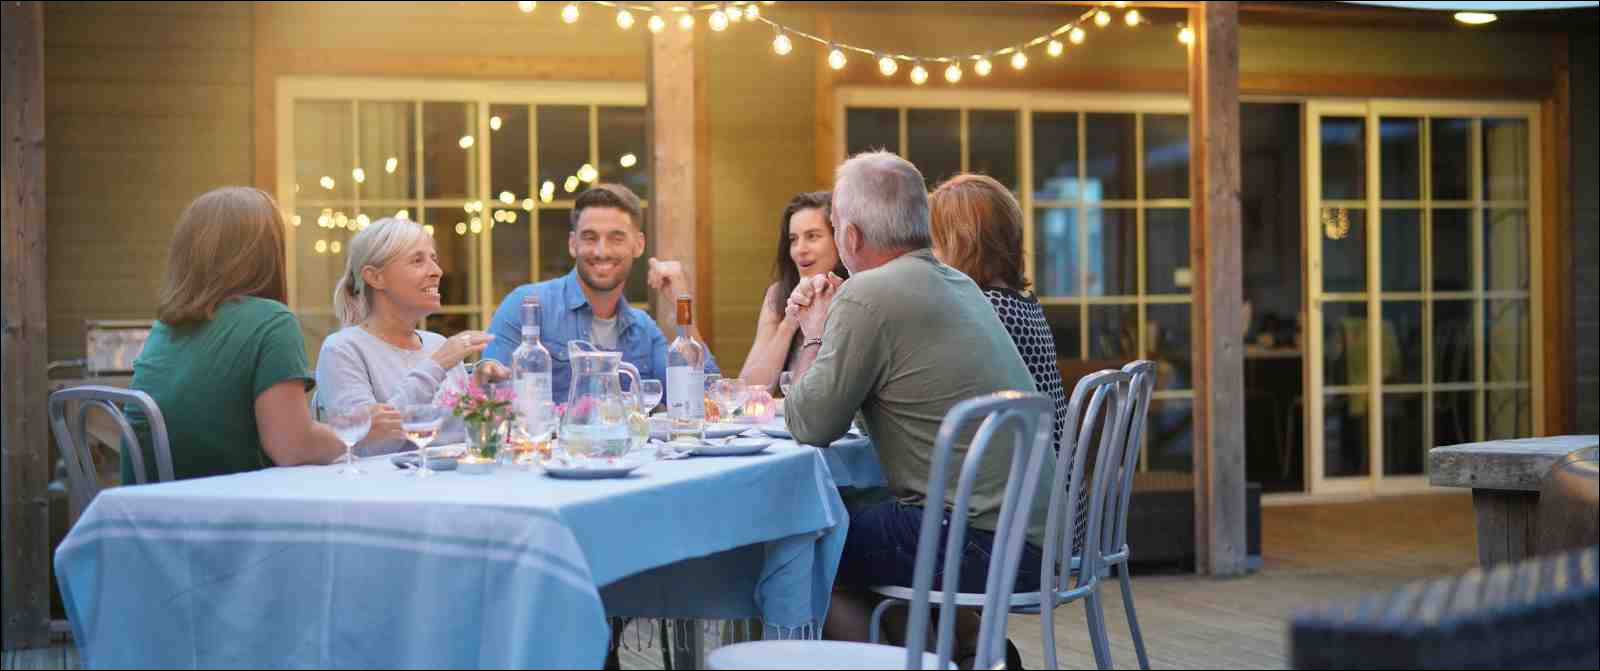 colleagues dining outdoors at casual restaurant